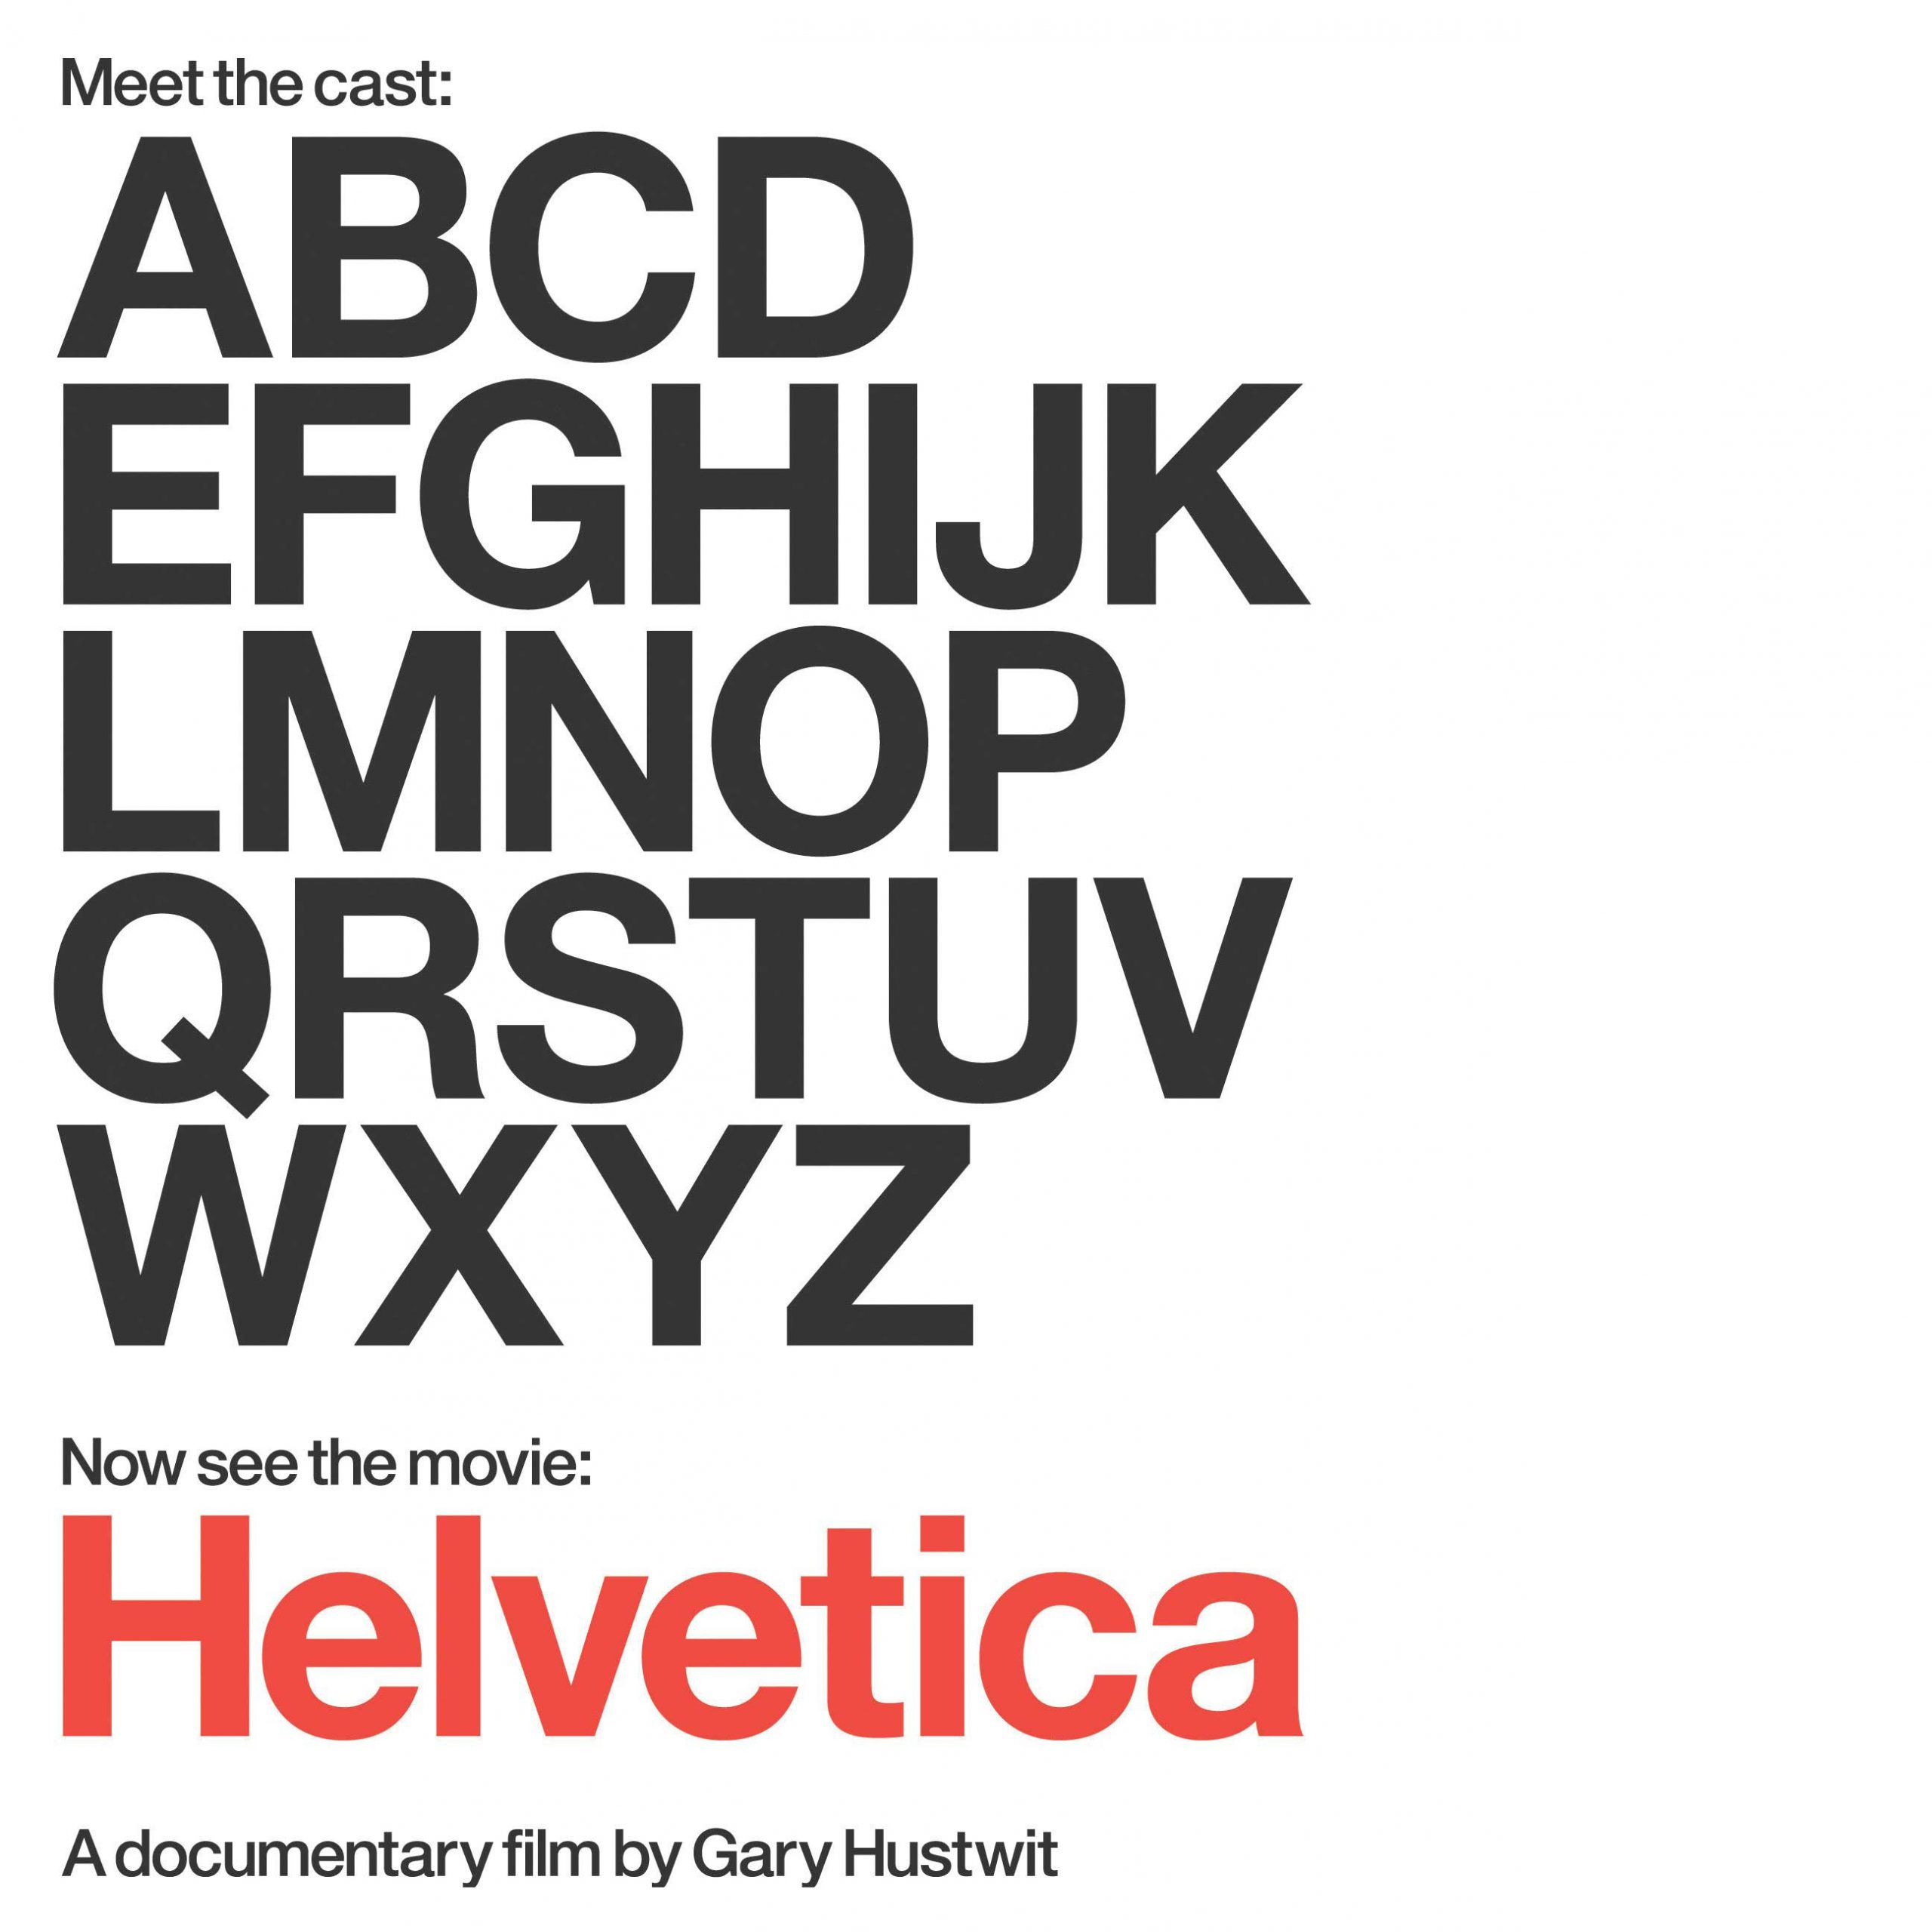 type-based promotional graphic for the Helvetica documentary film